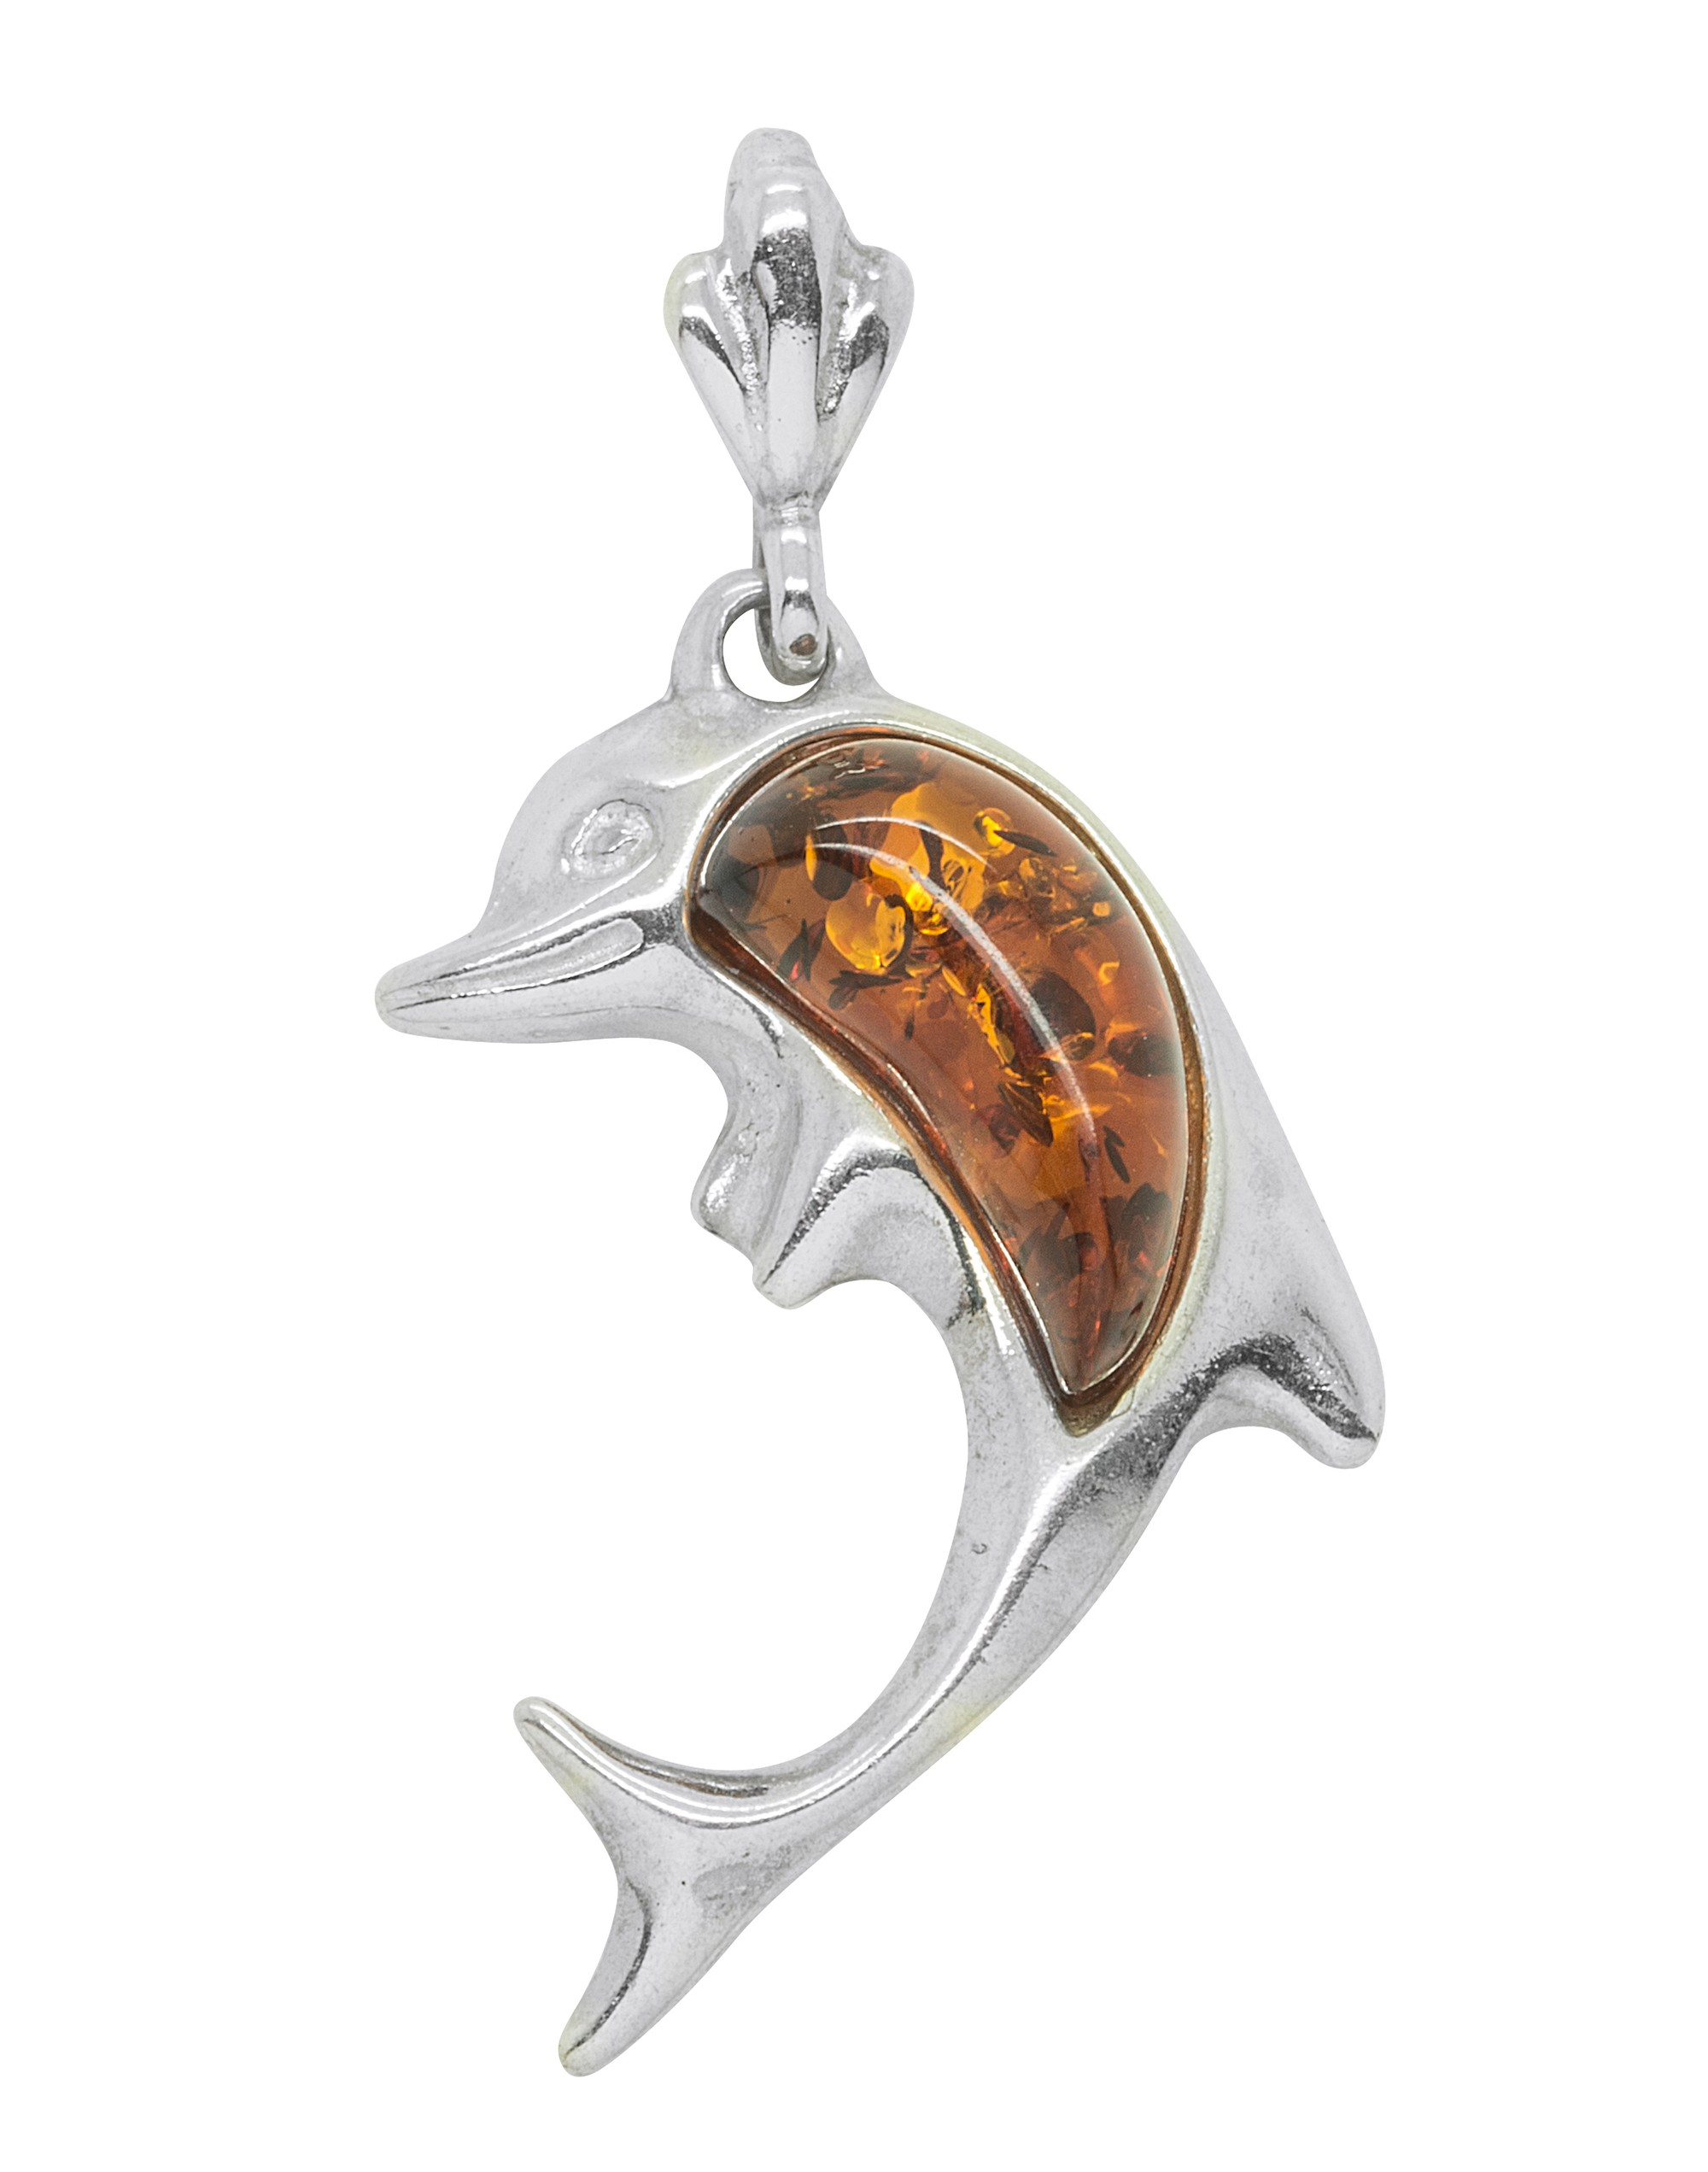 products glow in com shoplifo dark dolphin necklaces pendant the